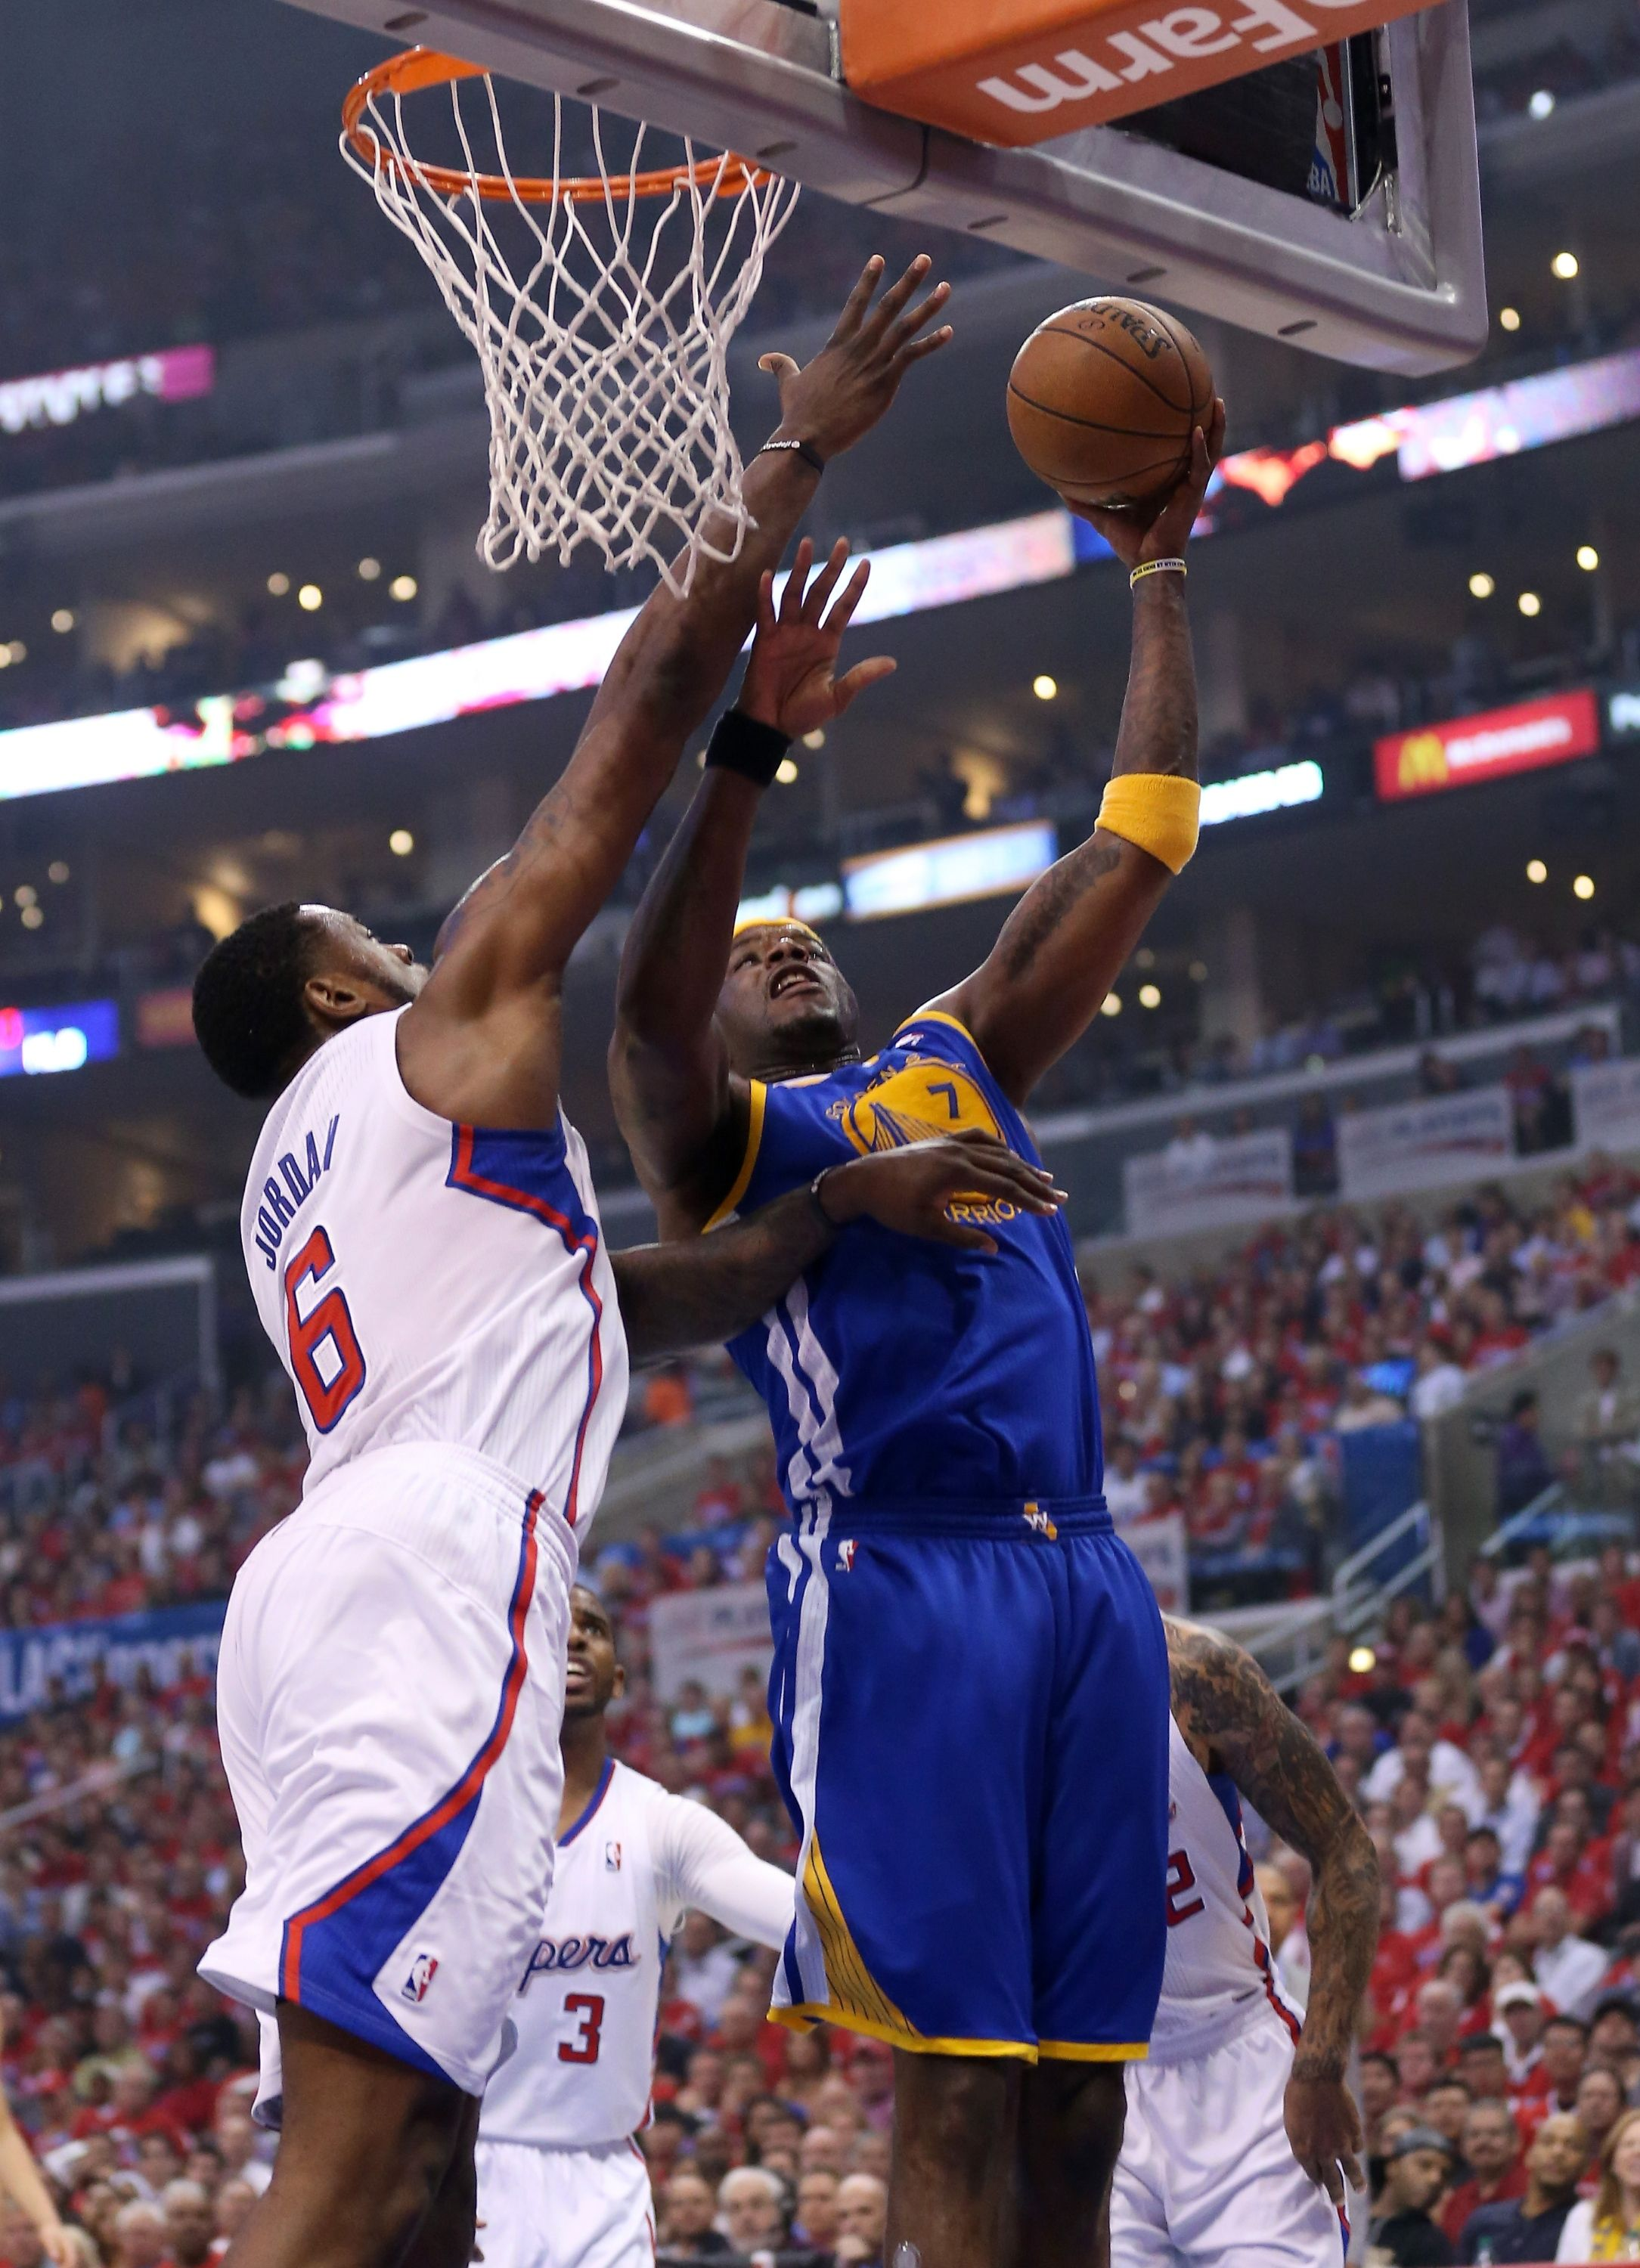 Los Angeles Ca April 21 Jermaine O Neal 7 Of The Golden State Warriors Shoots Over Deandre Jord Jermaine O Neal Los Angeles Clippers Golden State Warriors